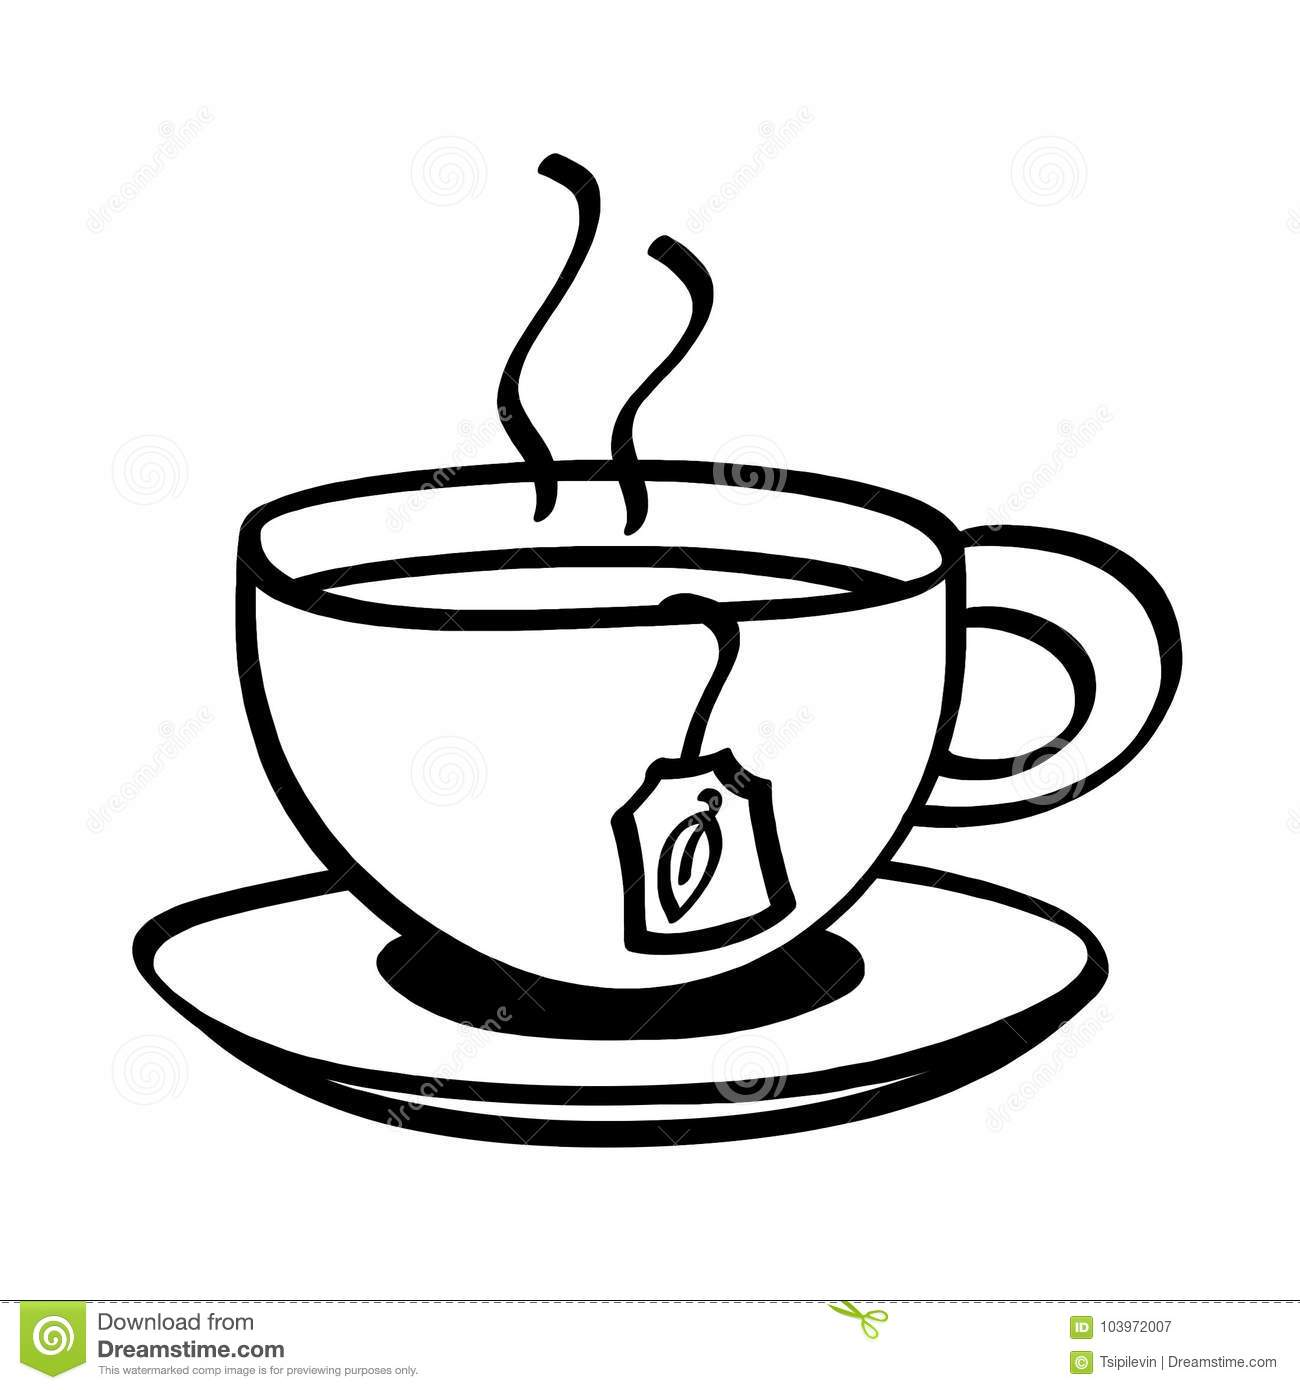 Tea Rose Clipart Black And White: Cup Of Tea Outline Illustration On White Background Stock